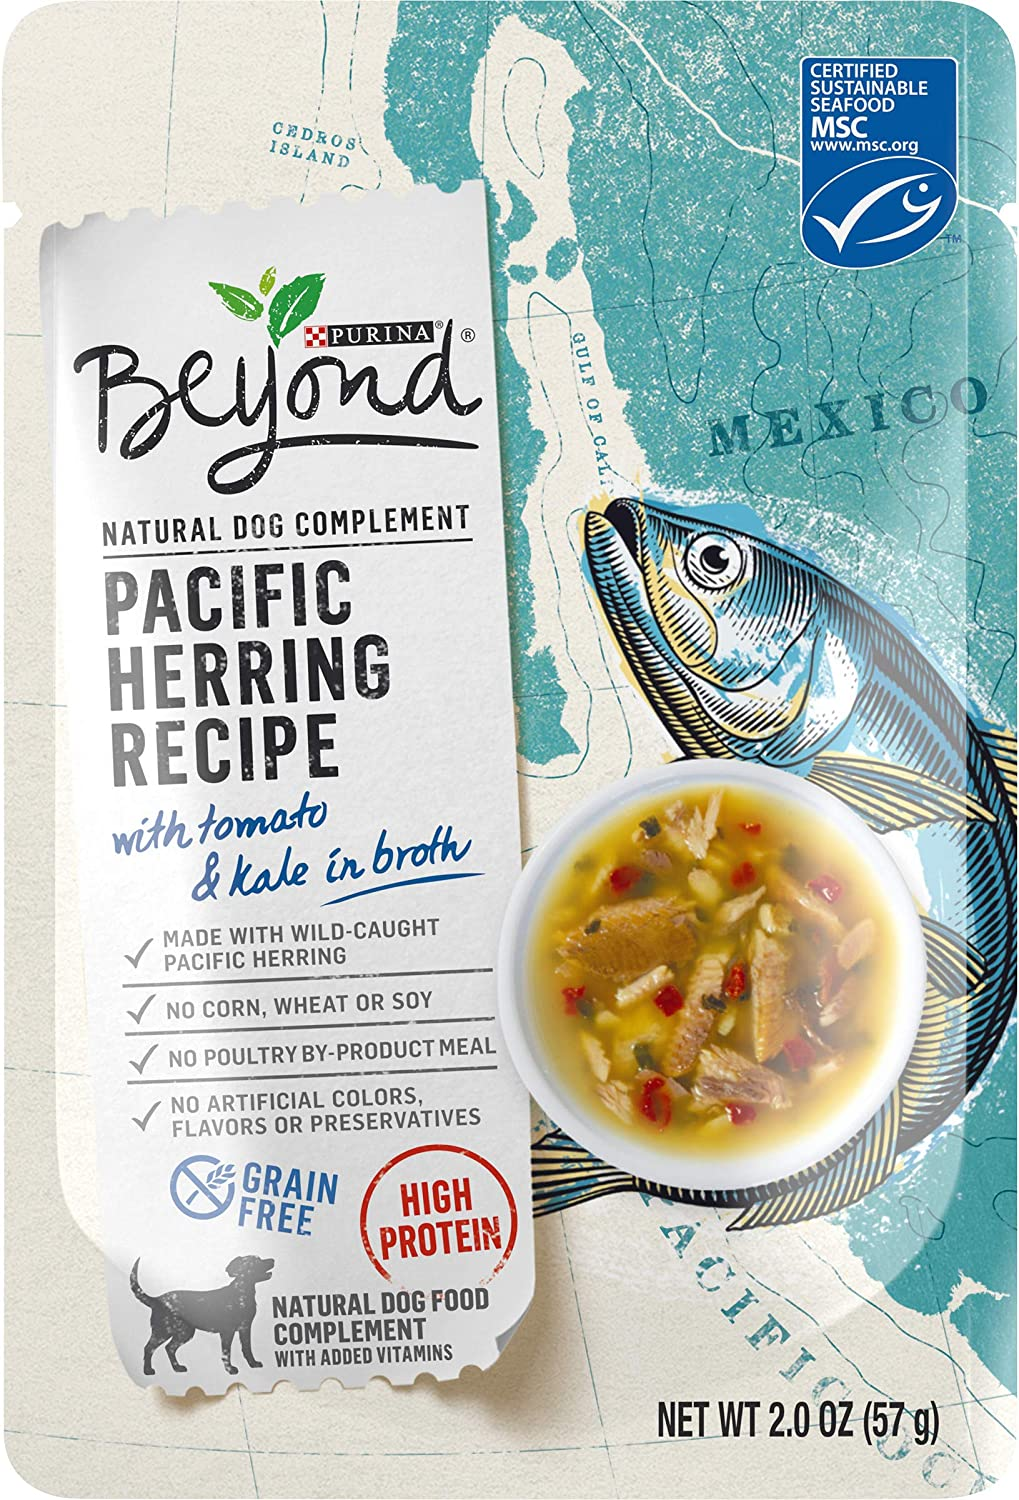 Purina Beyond Natural, High Protein, Grain Free Wet Dog Food Complement, Pacific Herring Recipe - (16) 2 oz. Pouches